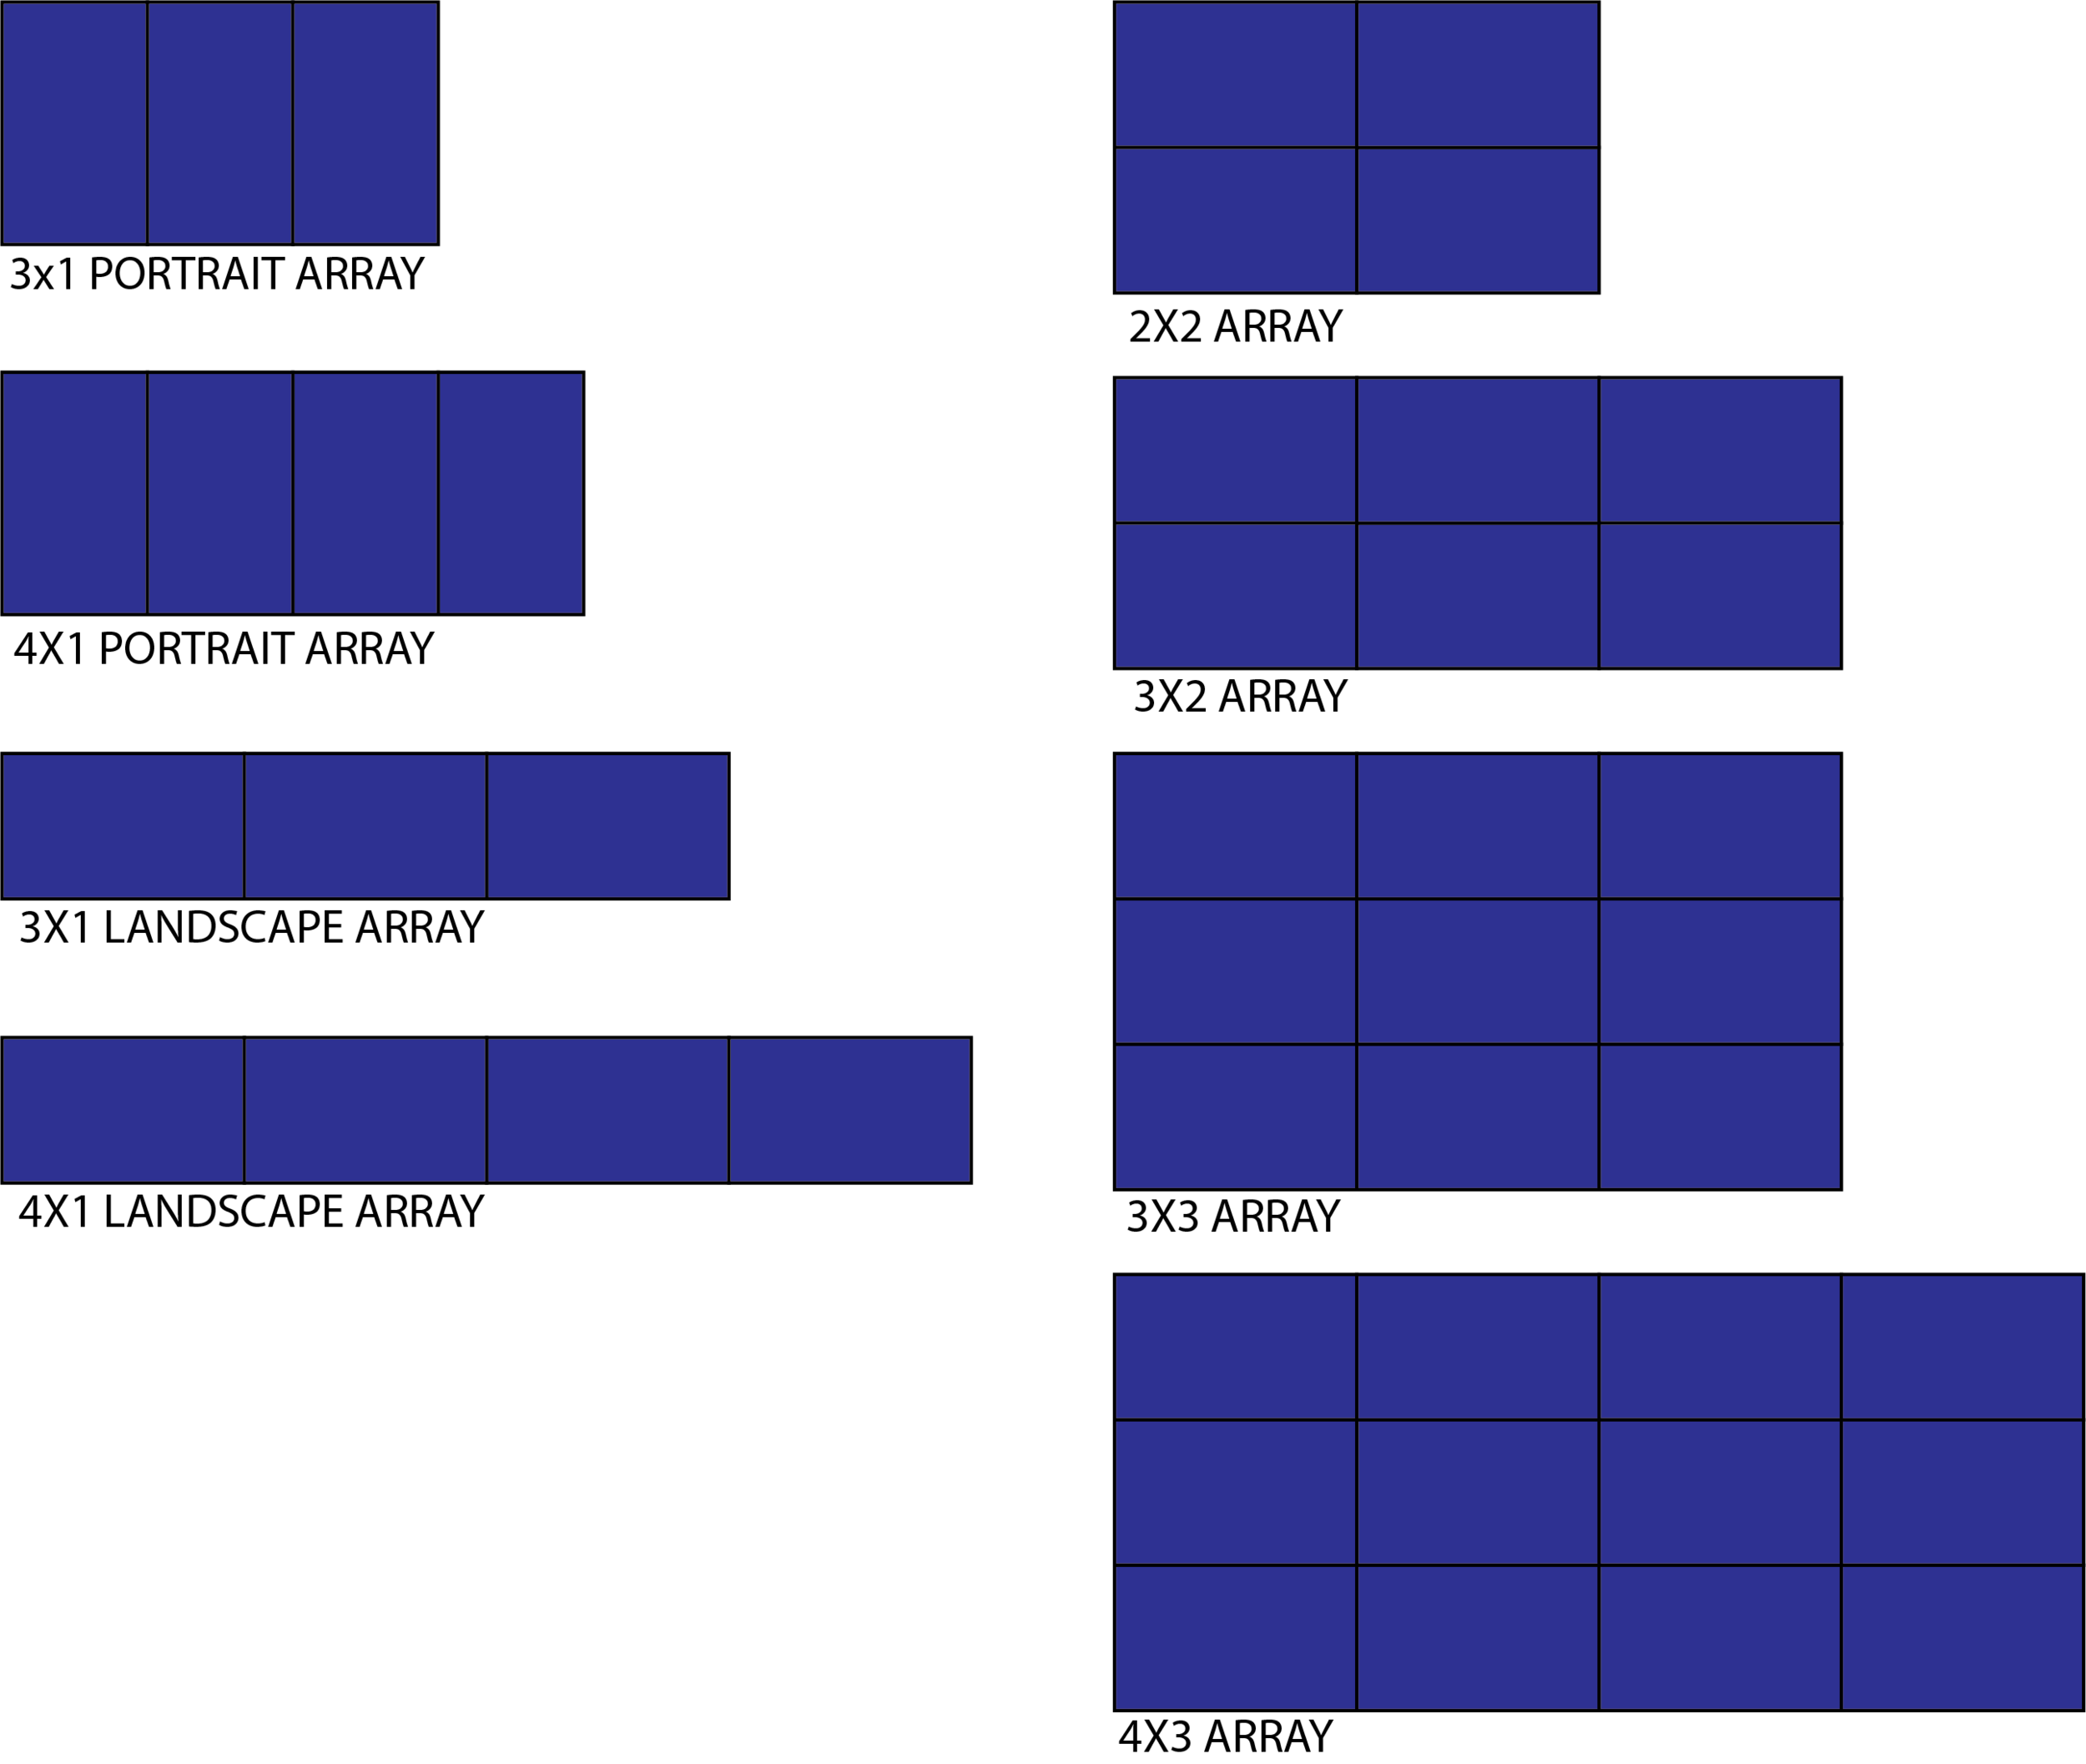 video wall diagram R2.png